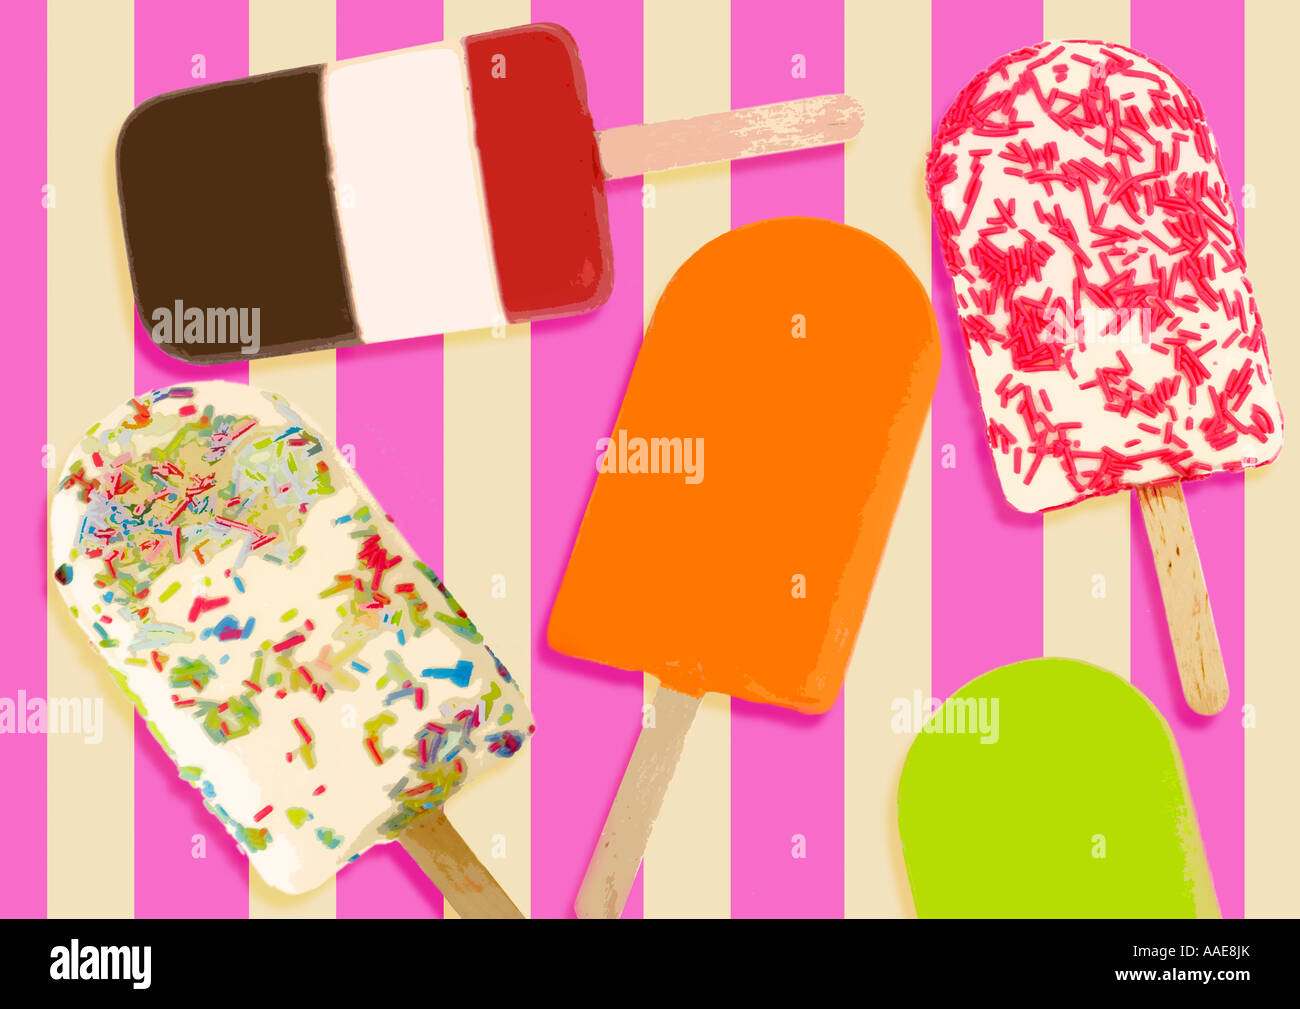 Illustration of ice lollies on stripy background - Stock Image